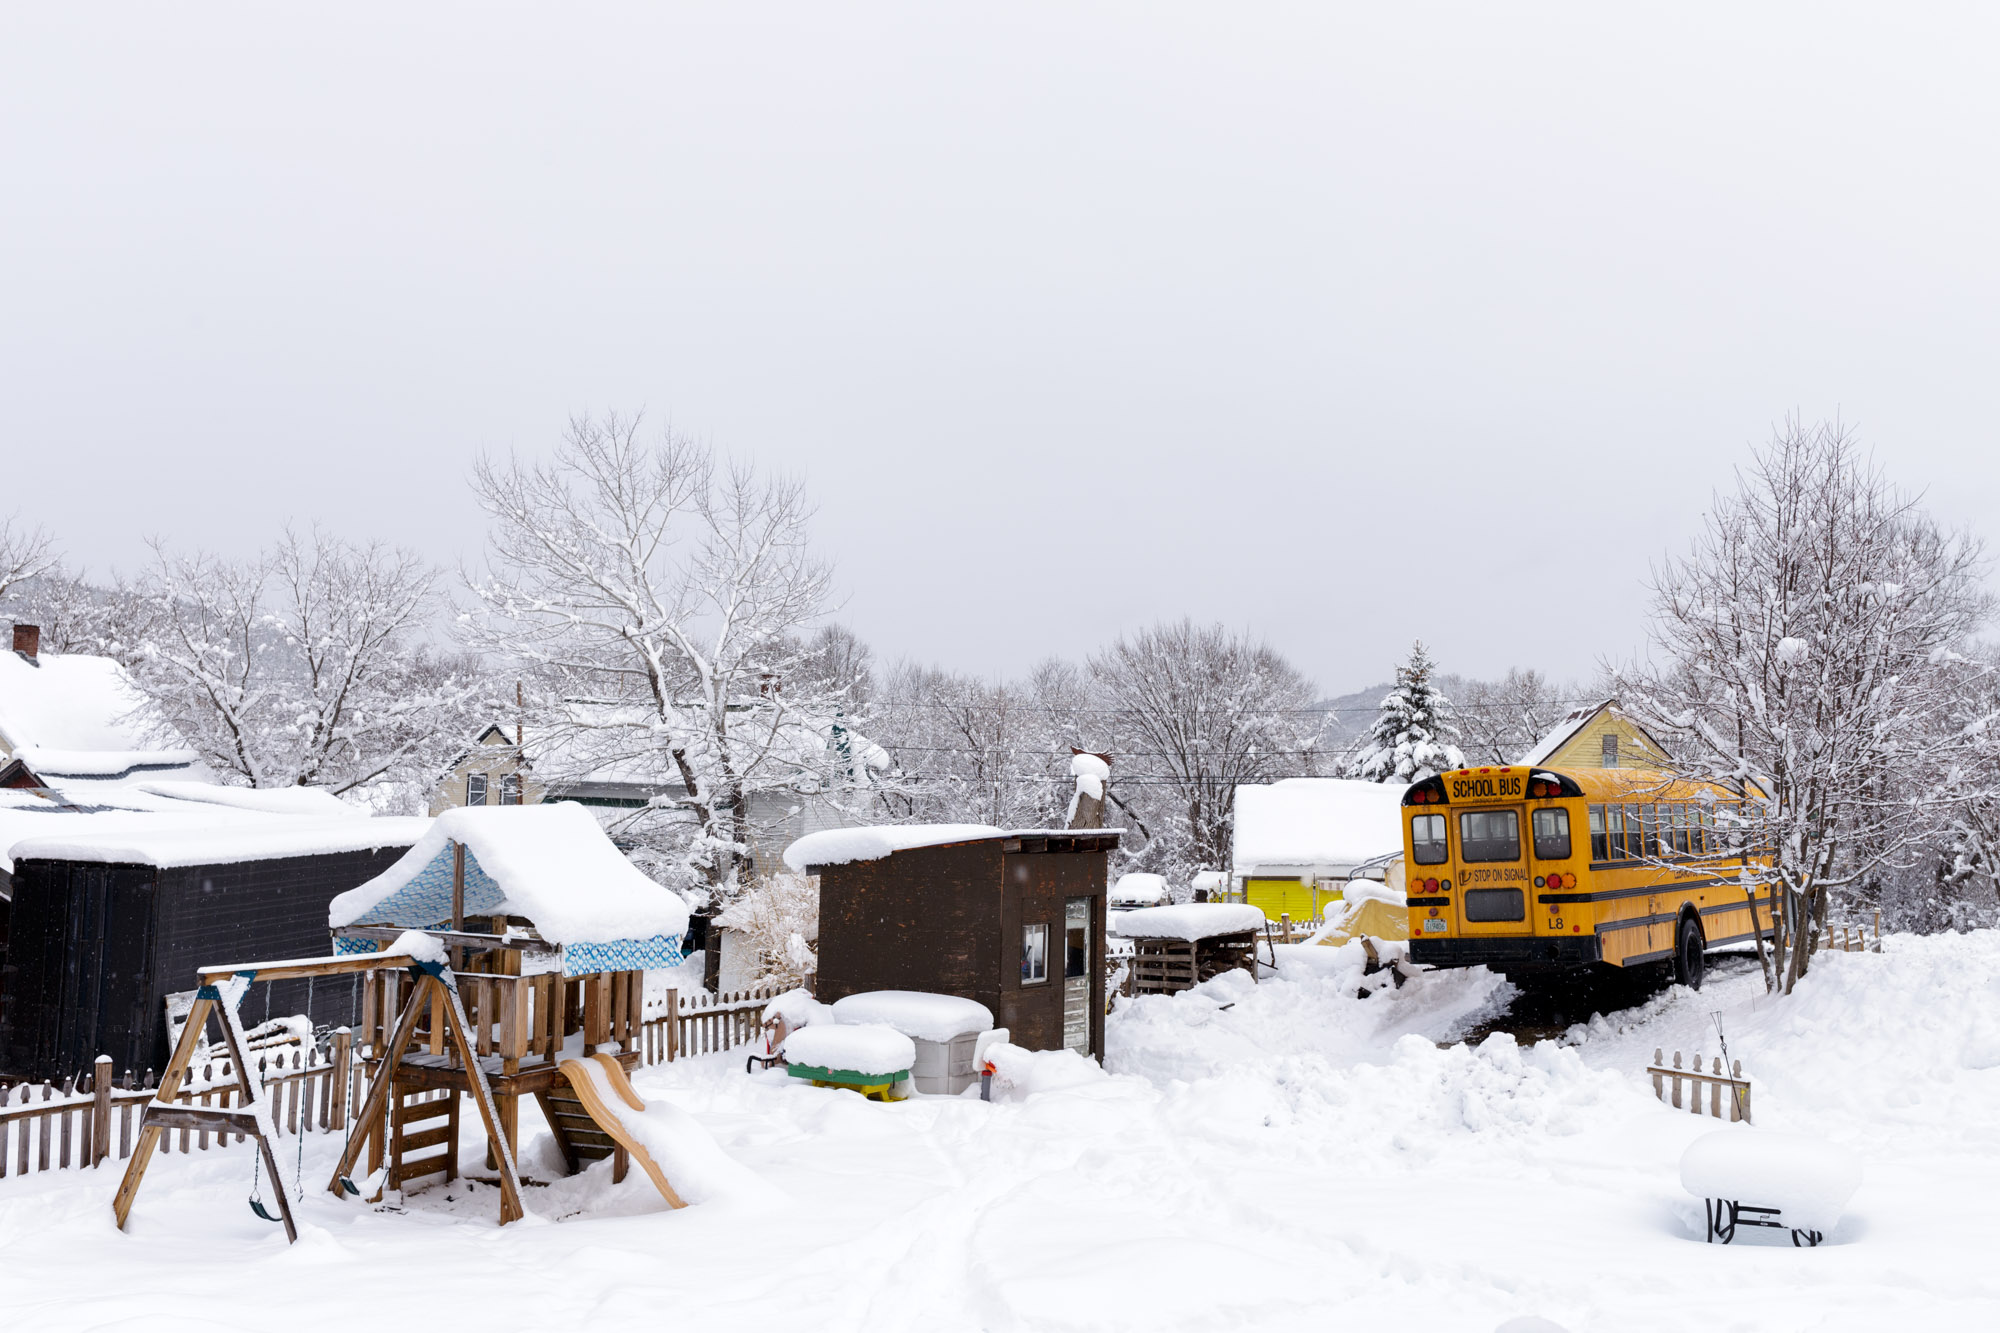 School Bus in Backyard With Snow